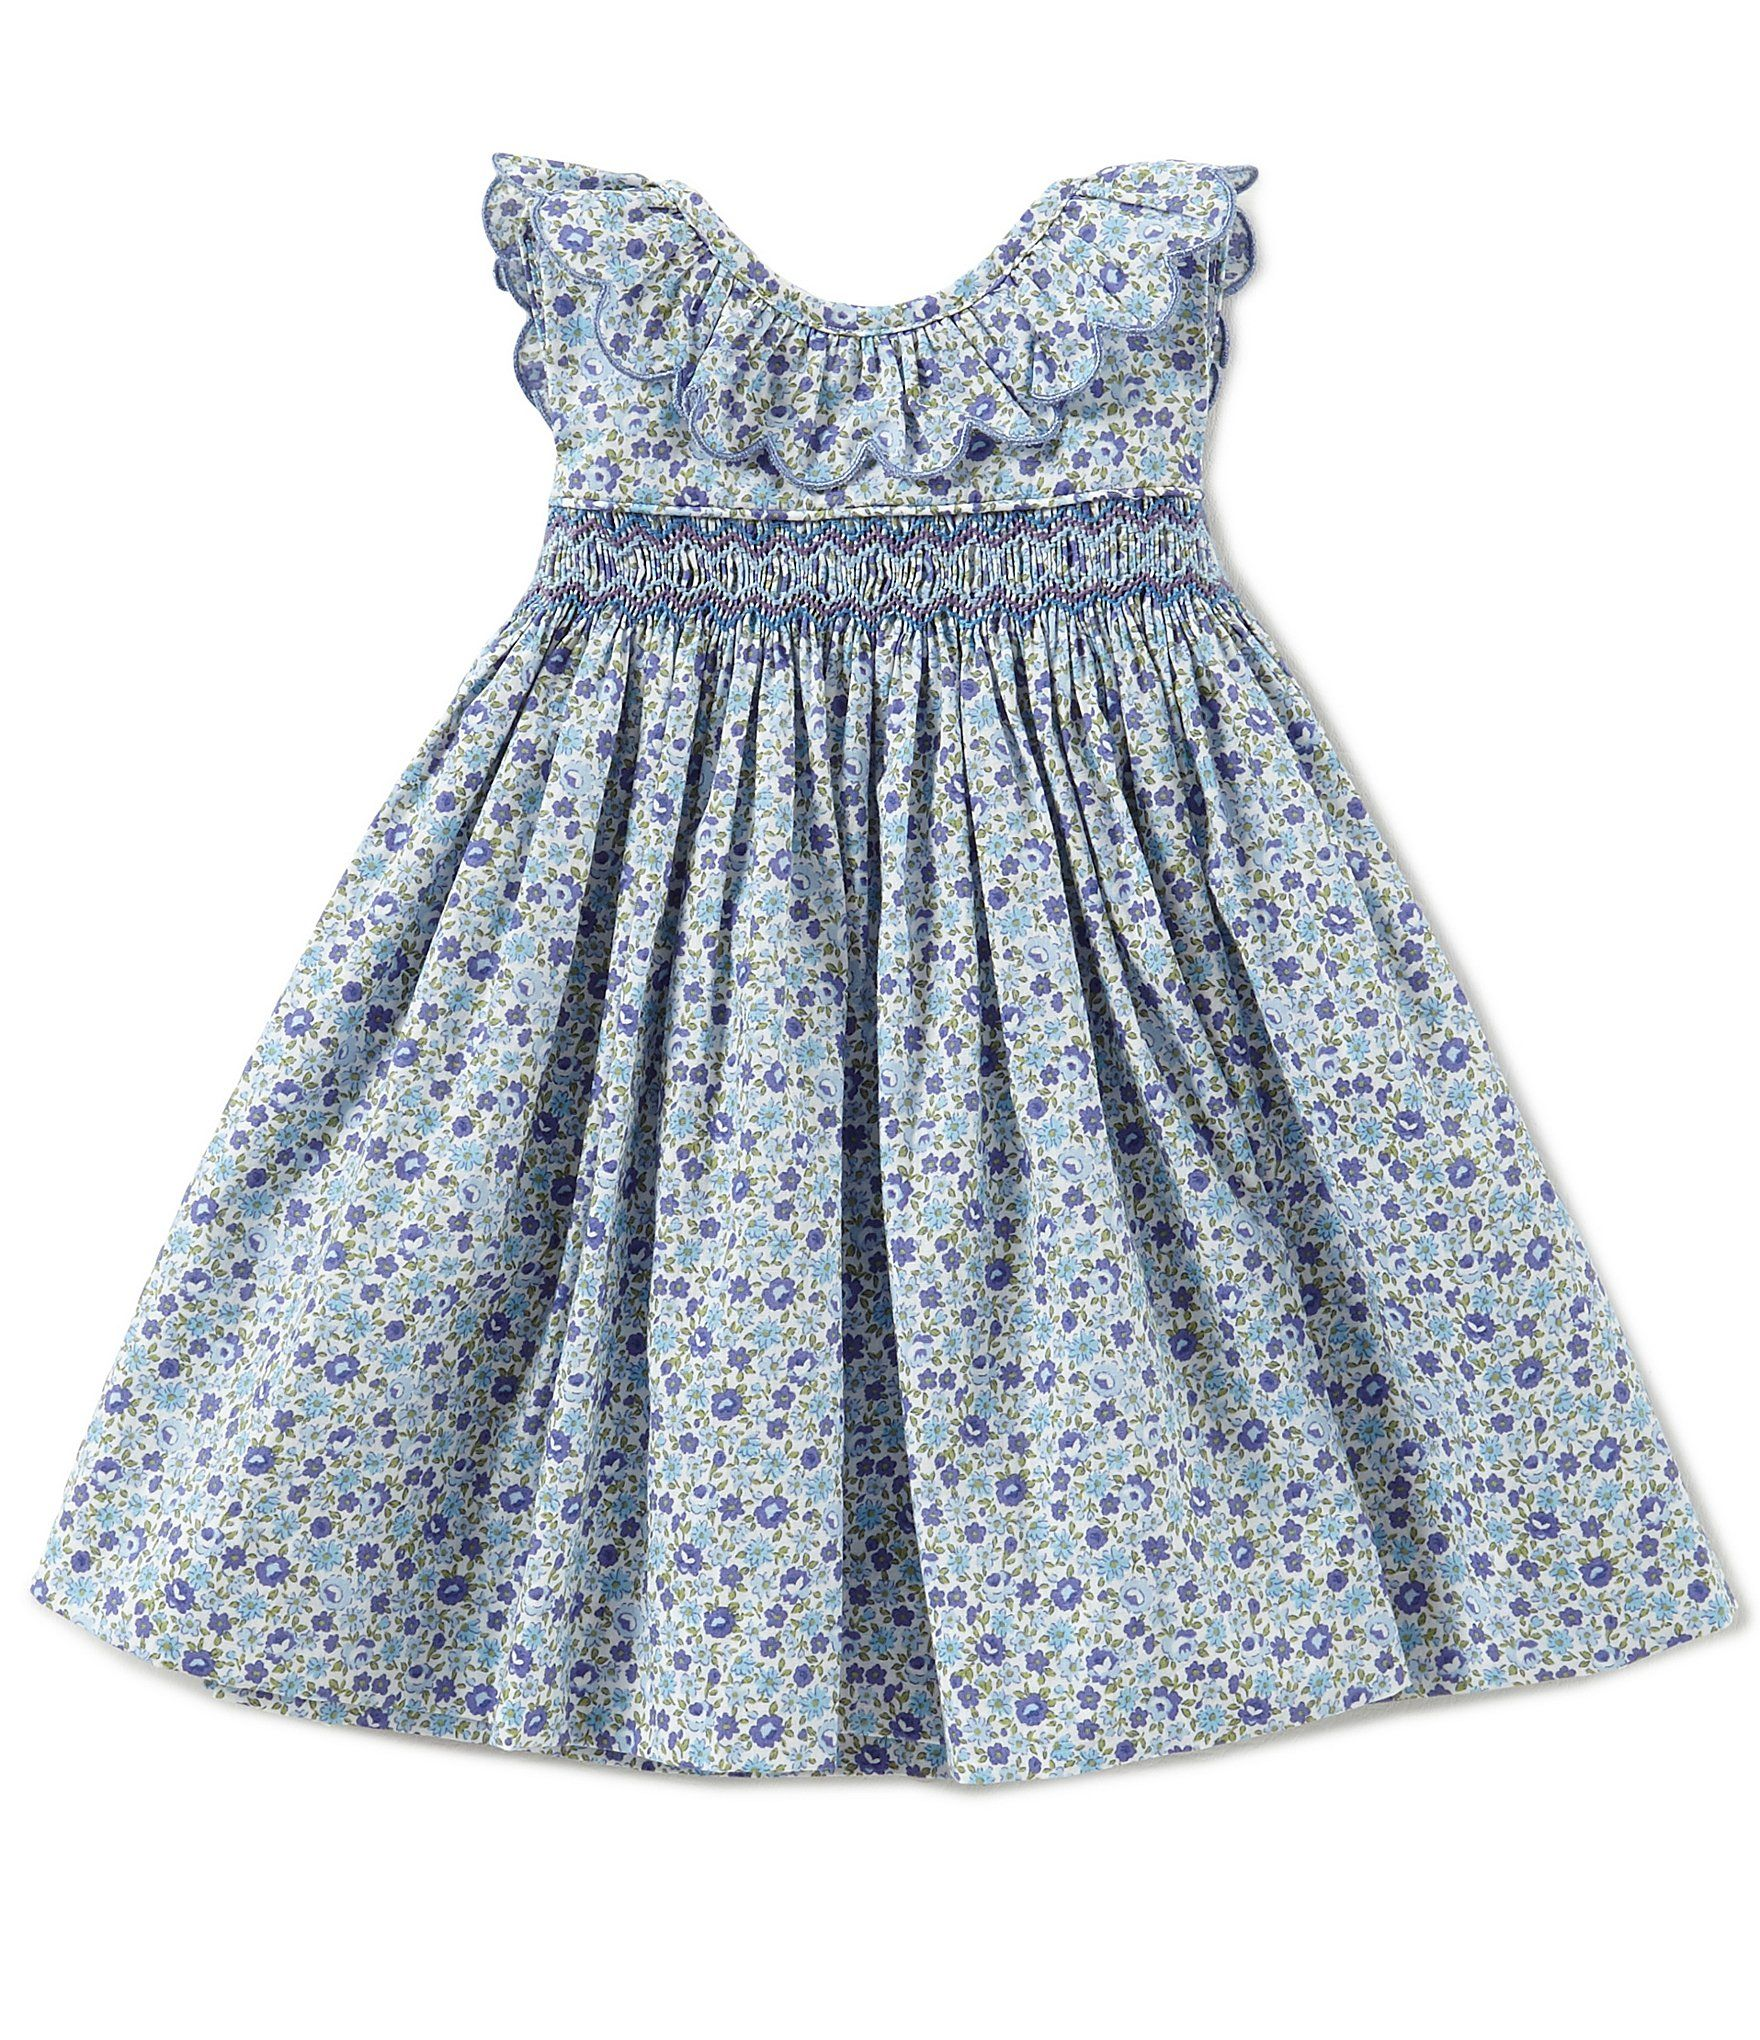 a3baaa94126 Shop for Edgehill Collection Baby Girls 3-24 Months Floral Printed Smocked  Ruffle Collar Dress at Dillards.com. Visit Dillards.com to find clothing